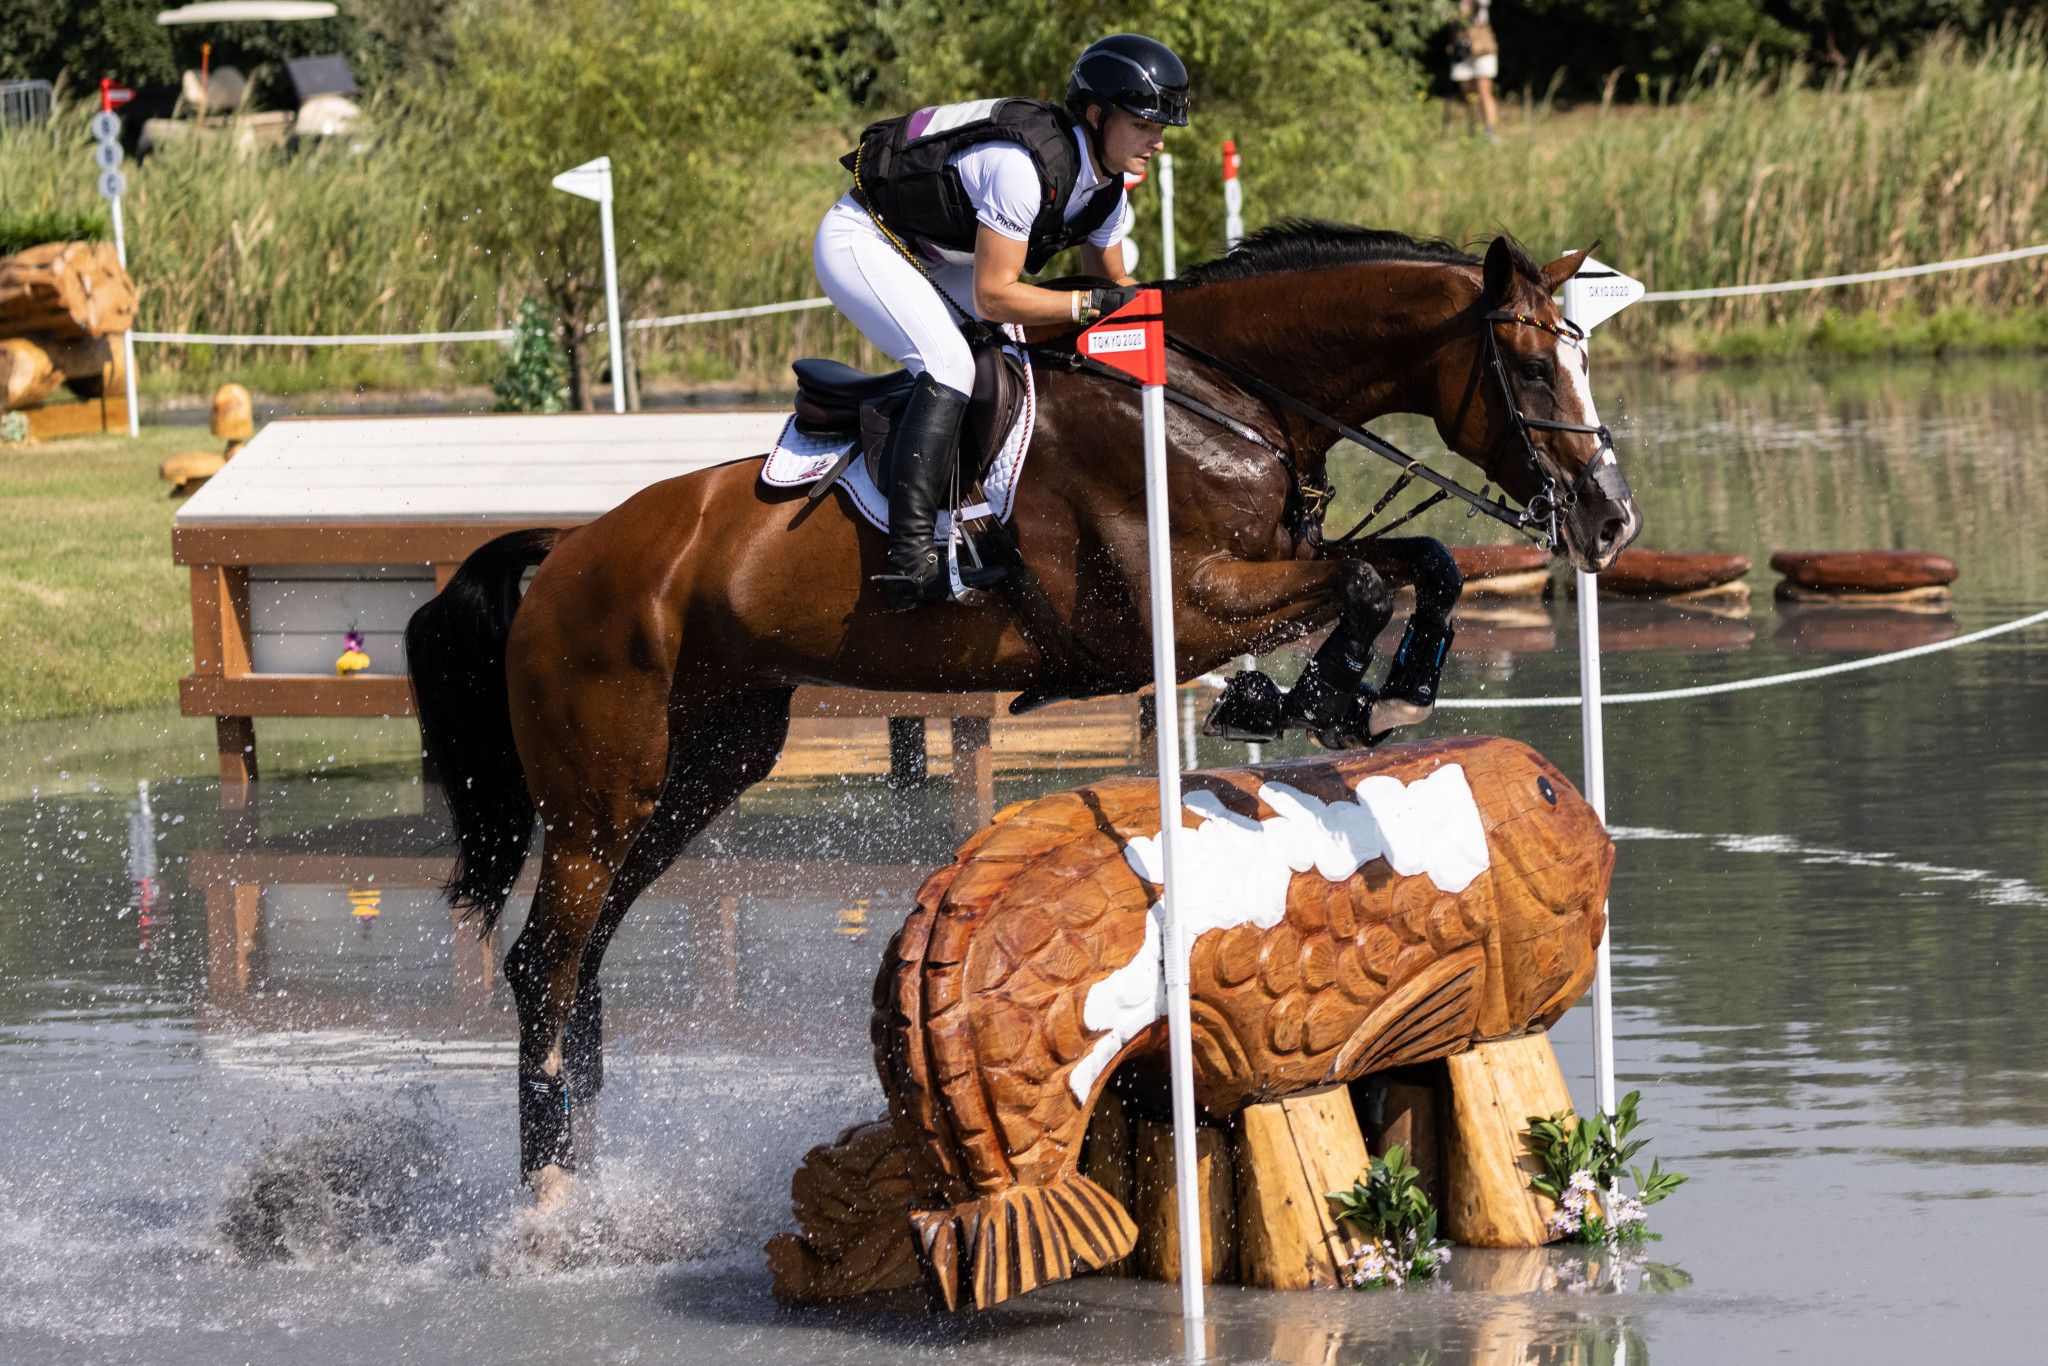 Krajewski becomes first woman to win solo eventing gold as Britain claim team title at Tokyo 2020